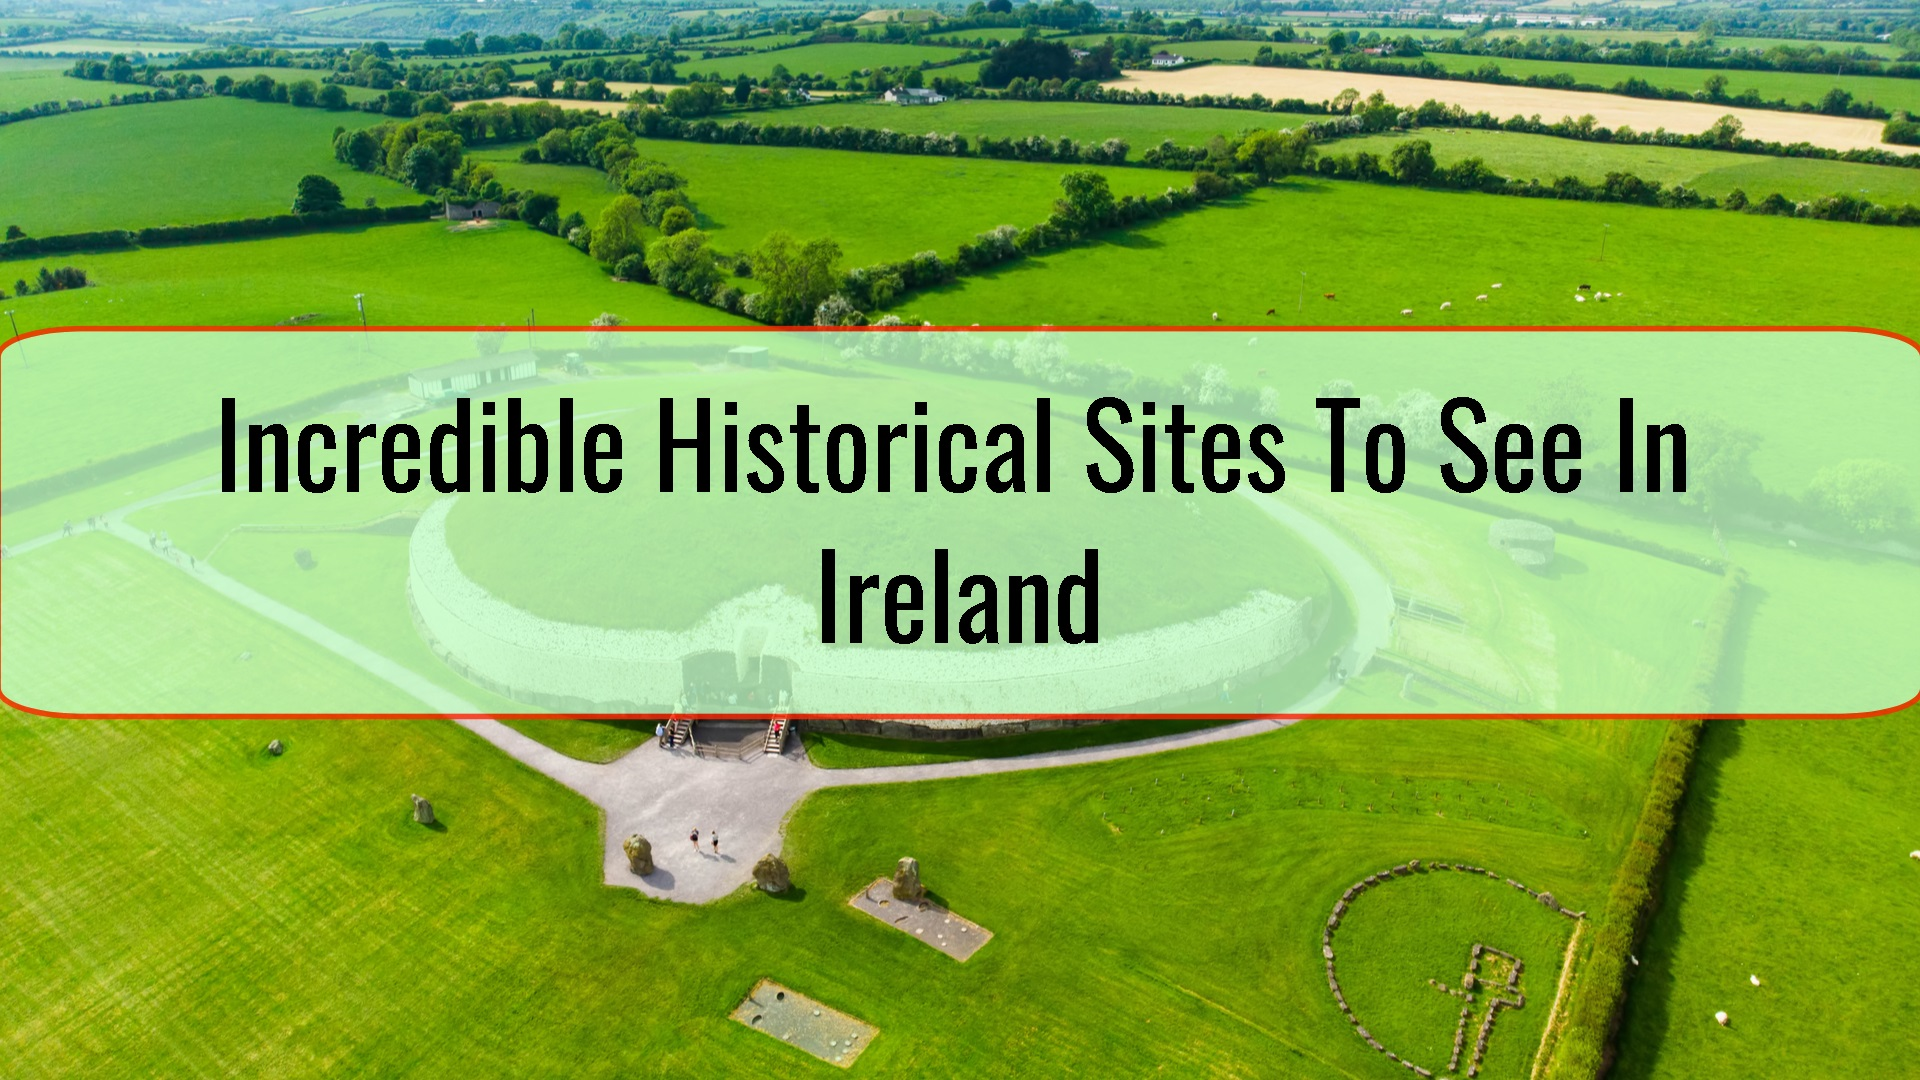 Incredible Historical Sites To See In Ireland